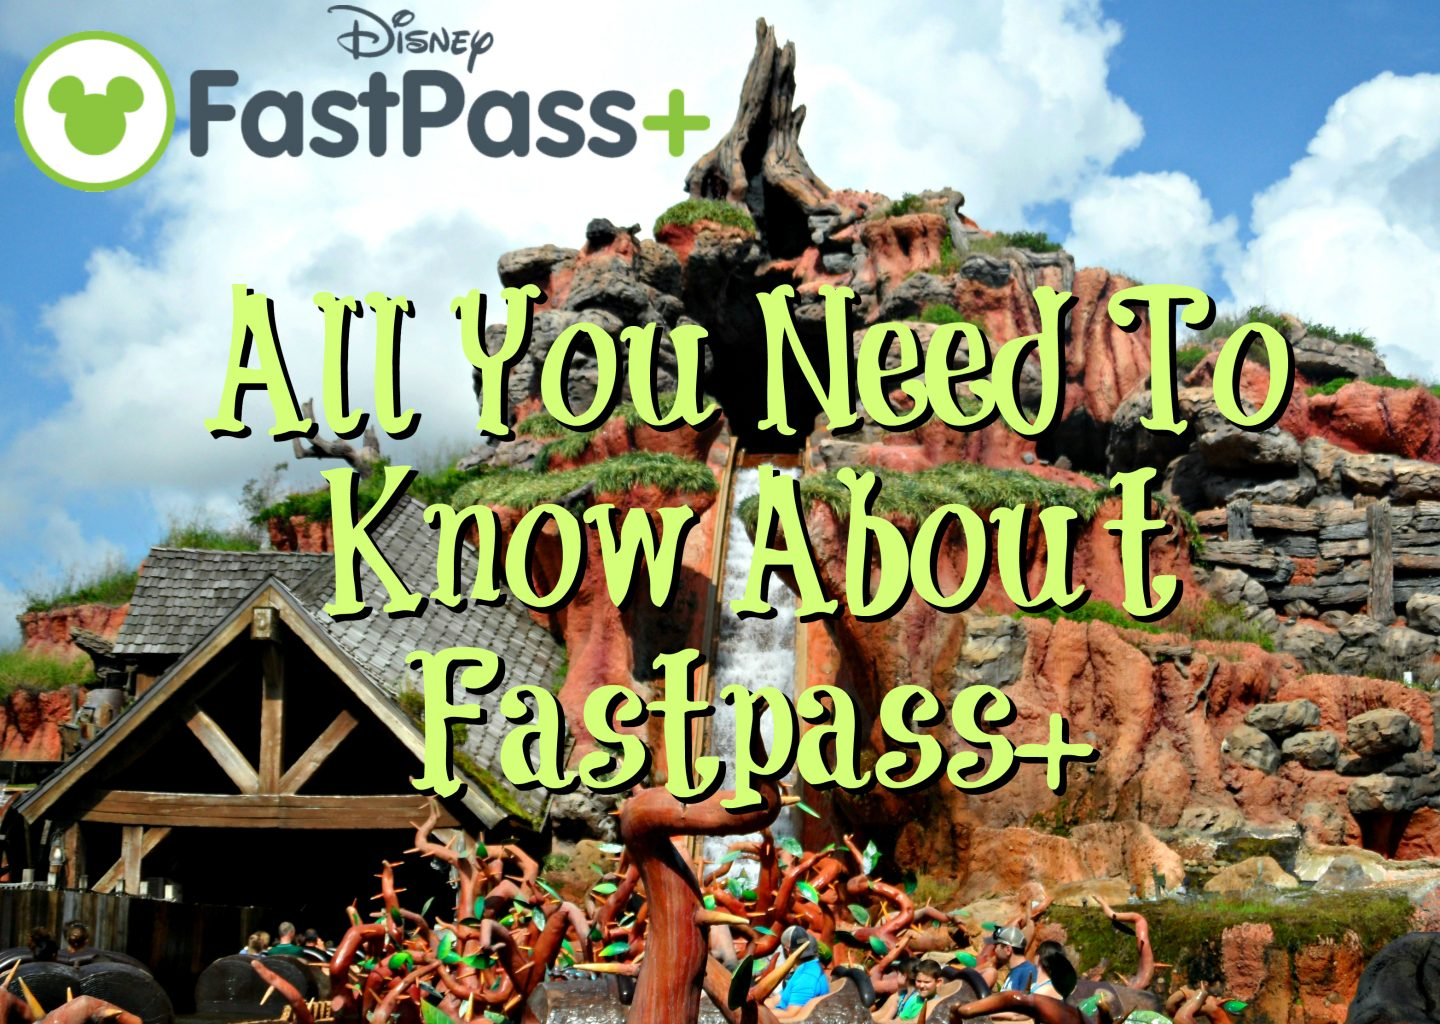 Fastpass+: All You Need To Know